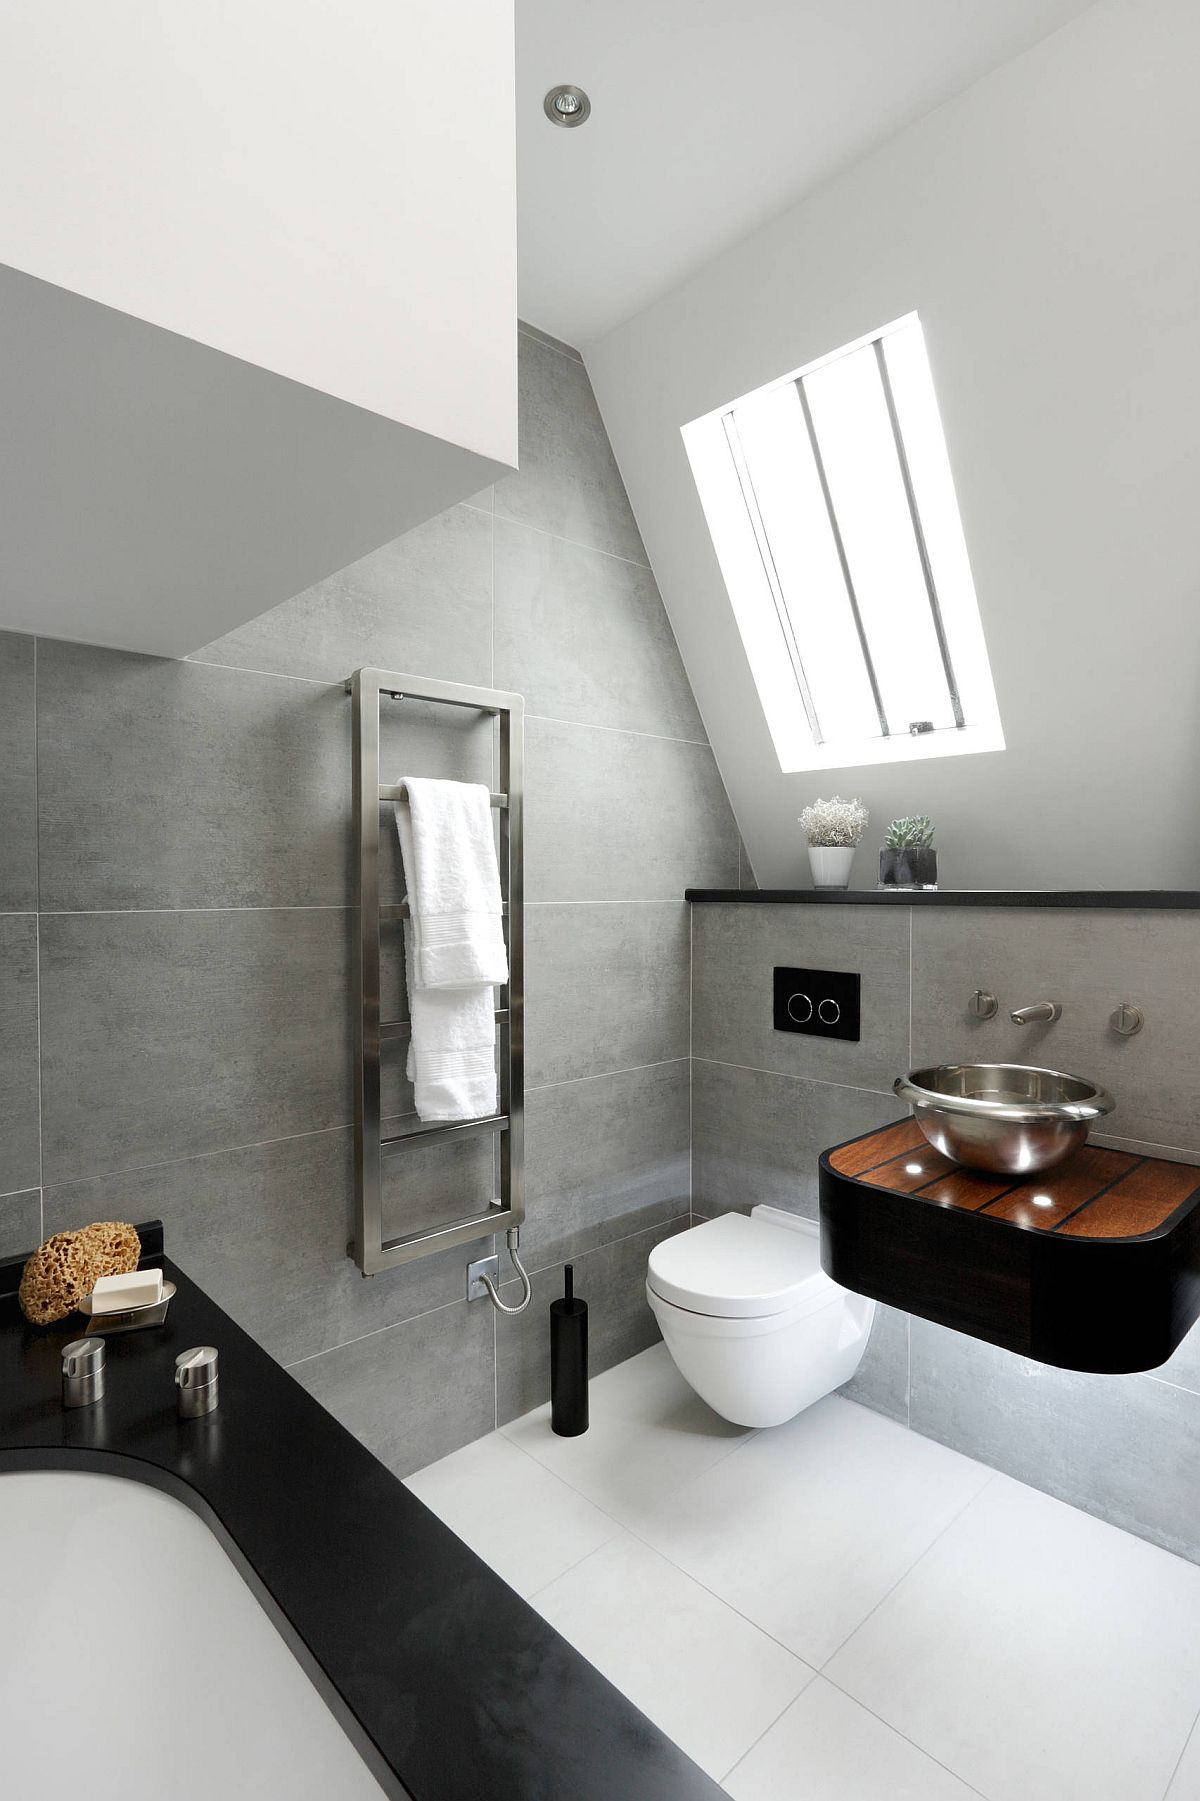 Sophisticated-contemporary-bathroom-in-gray-and-white-inside-modern-London-home-17829